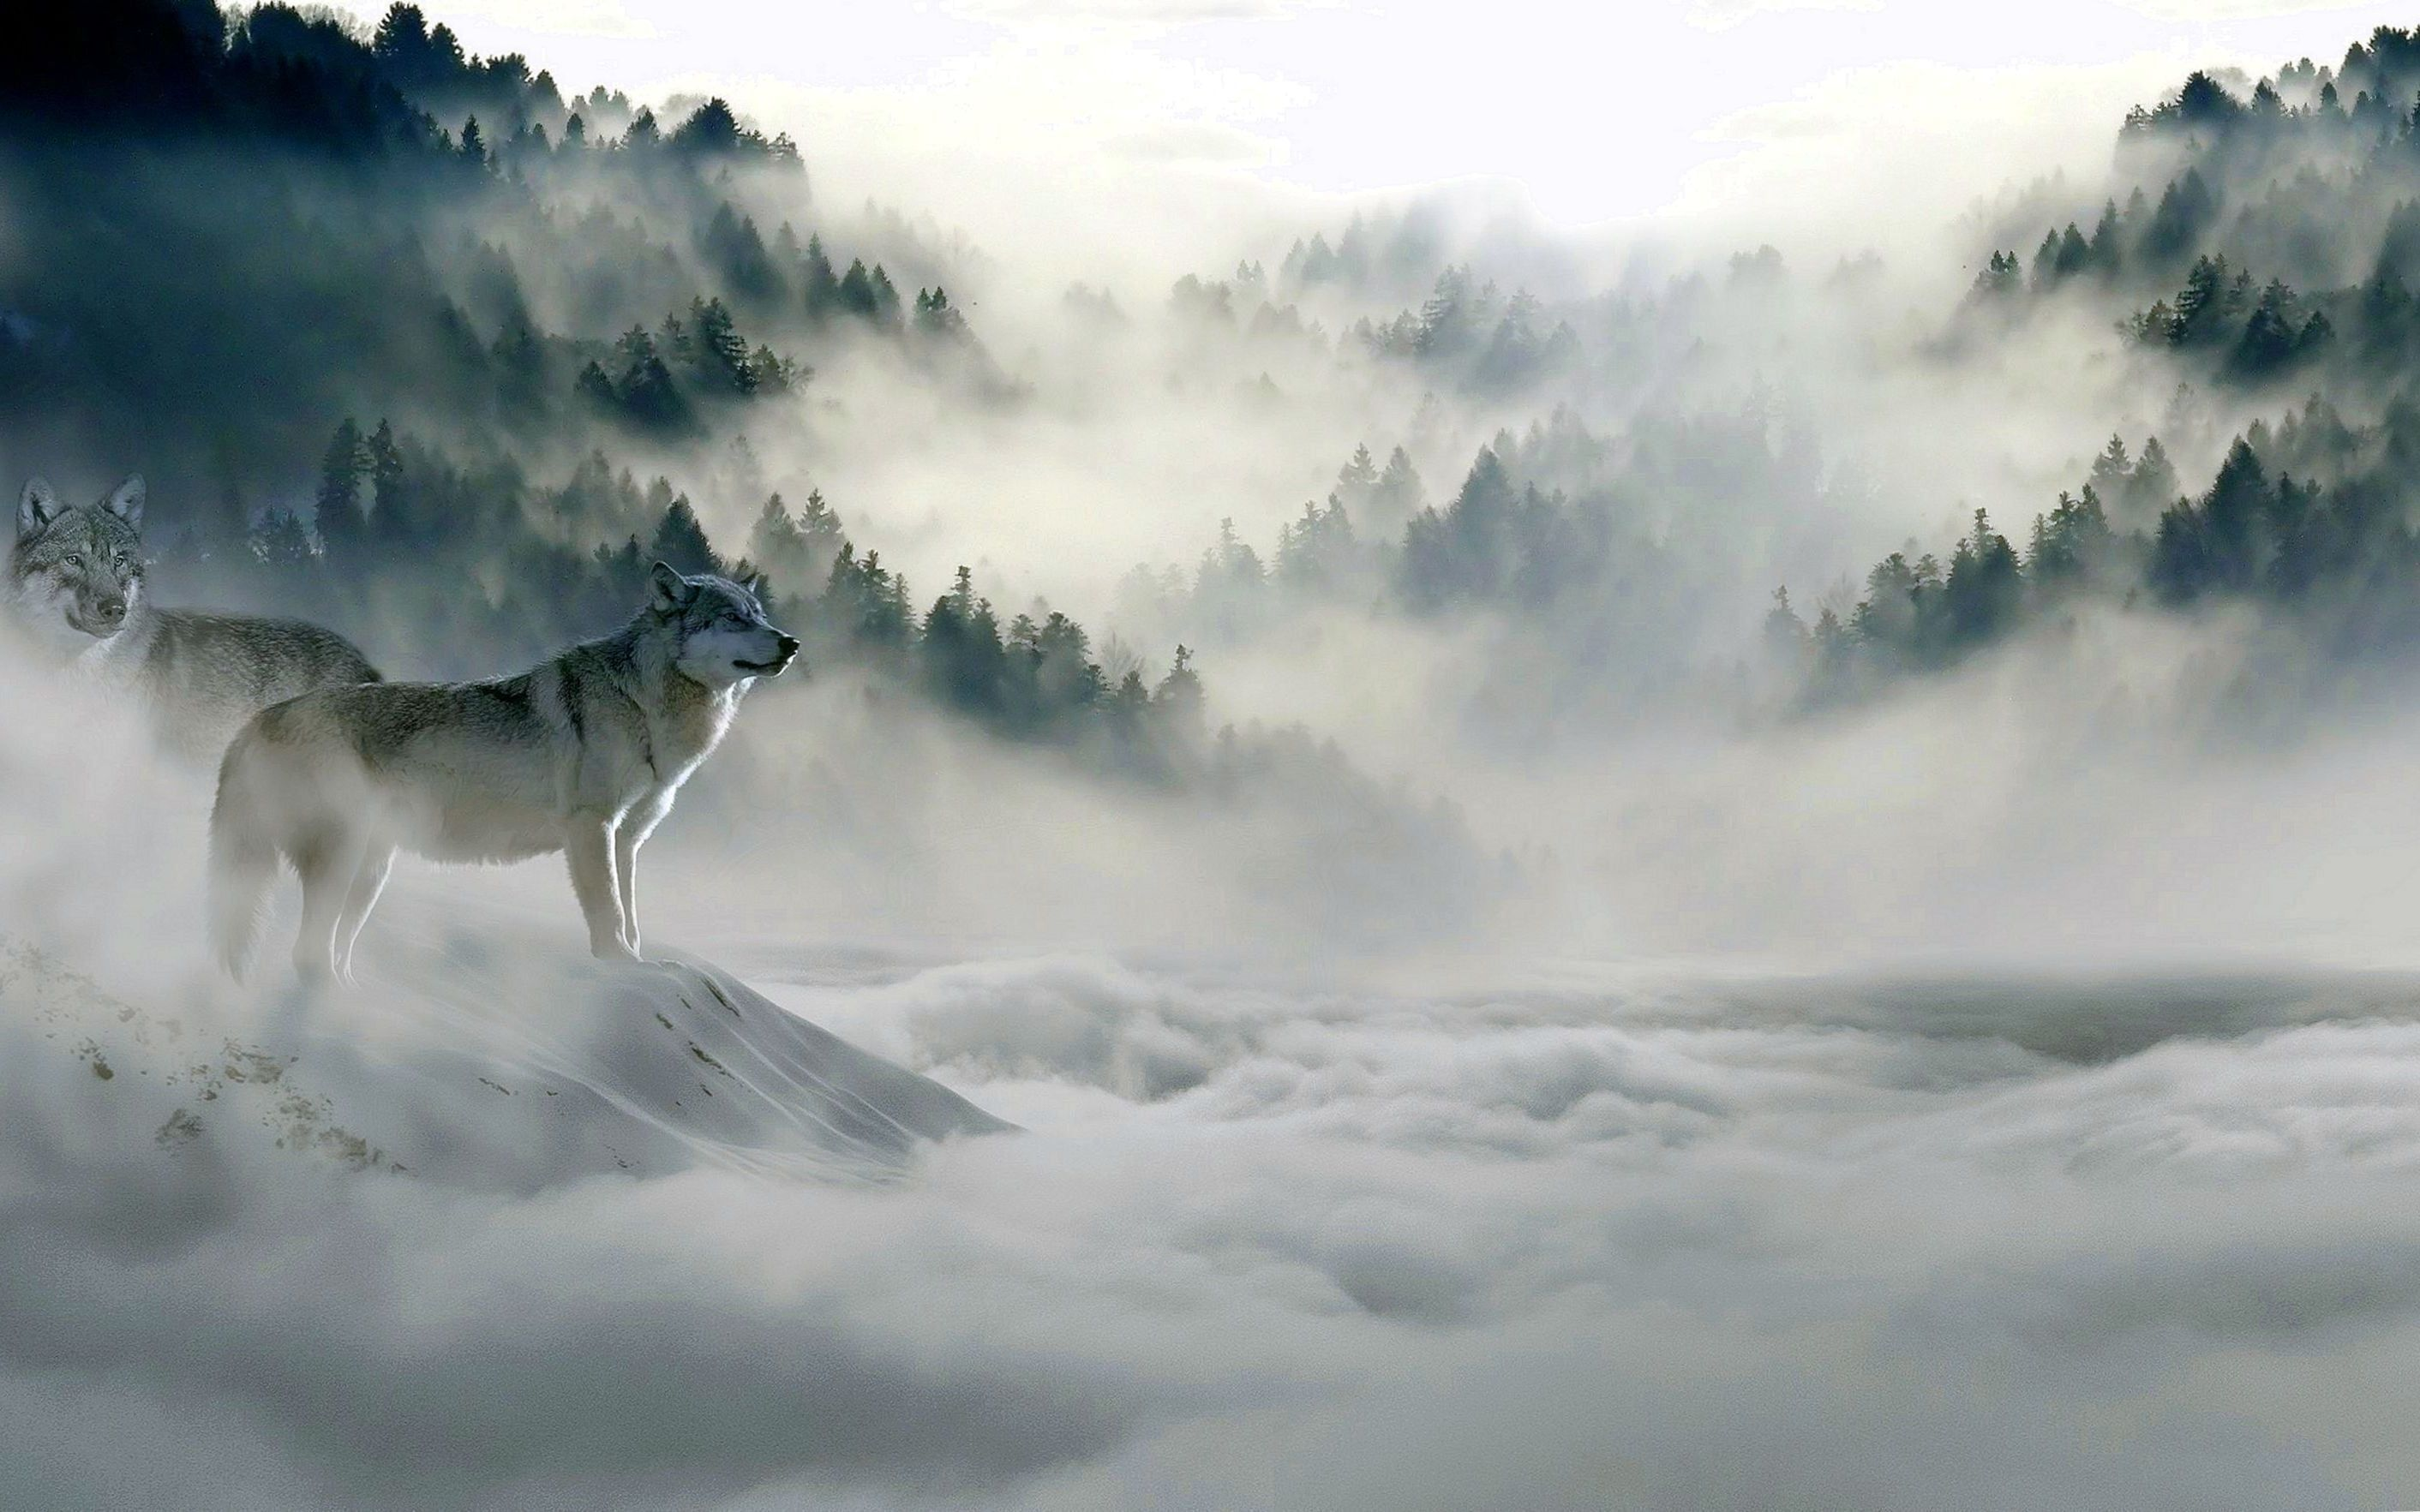 Best 4k Wolf Wallpapers Best 4k Wolf Wallpapers Wolf Wallpaper Desktop Wallpaper Xmas Wallpaper